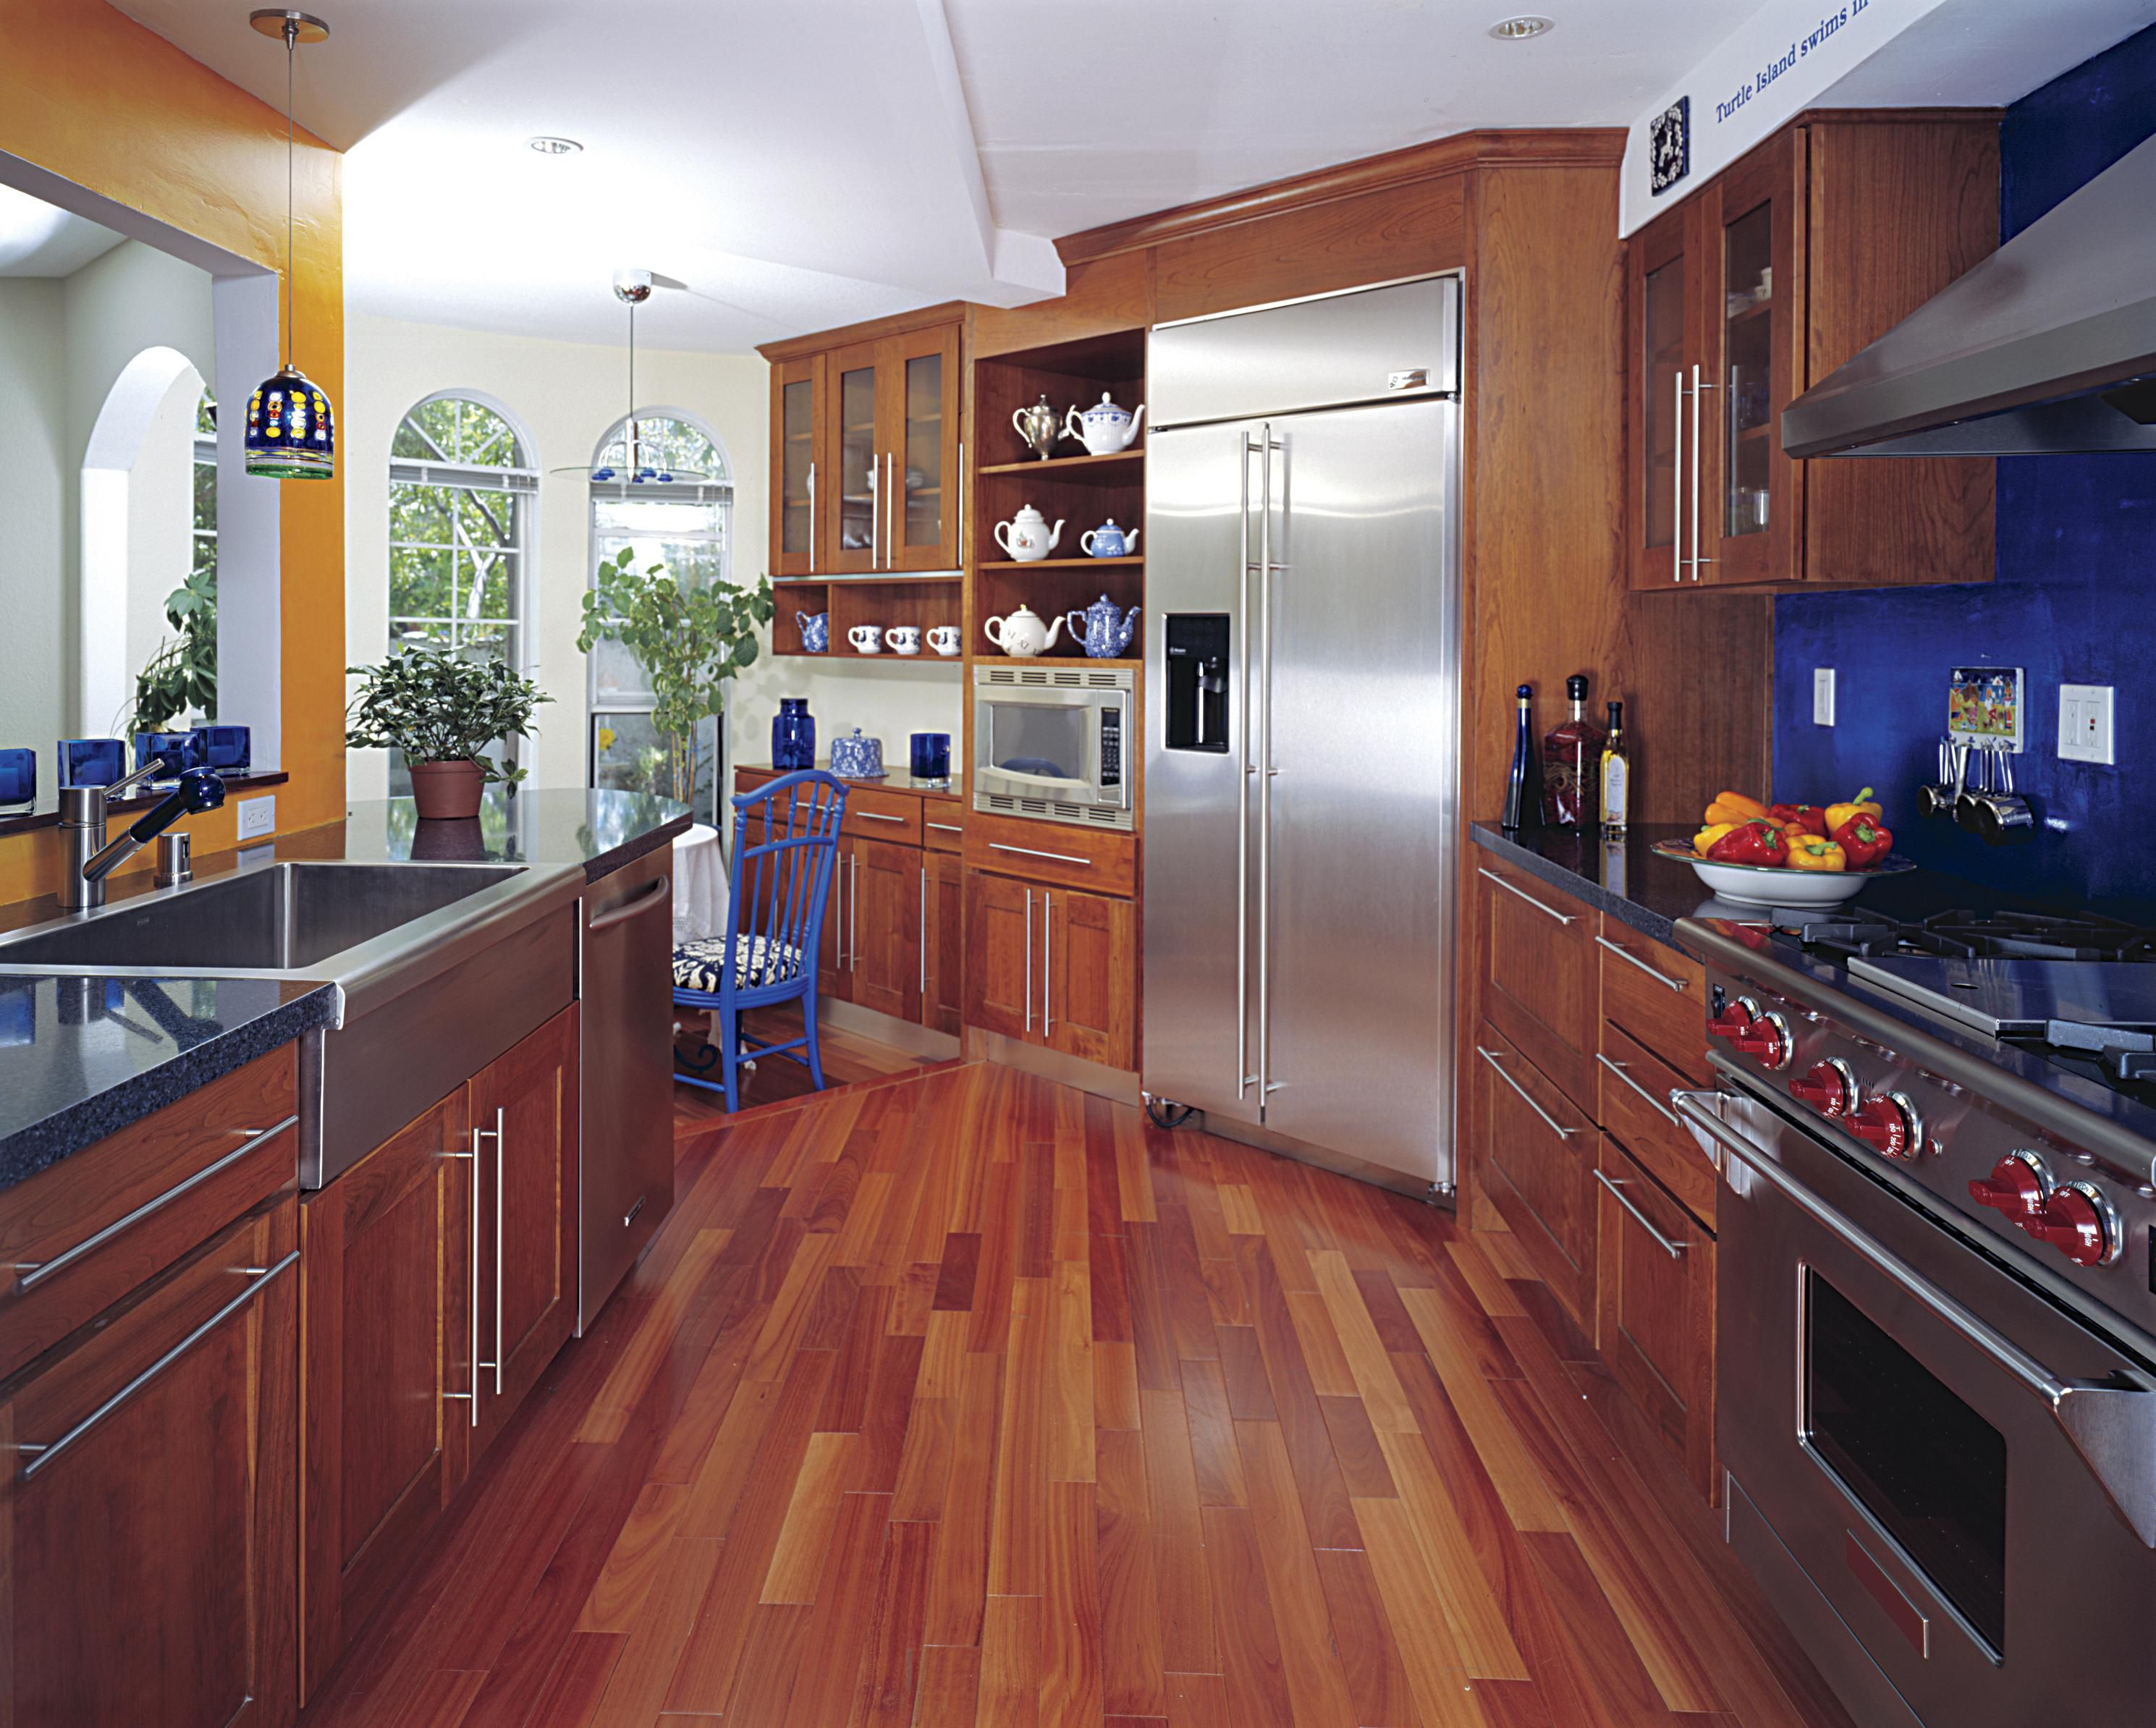 kitchen floor dish soap dispenser benefits and drawbacks of a hardwood in